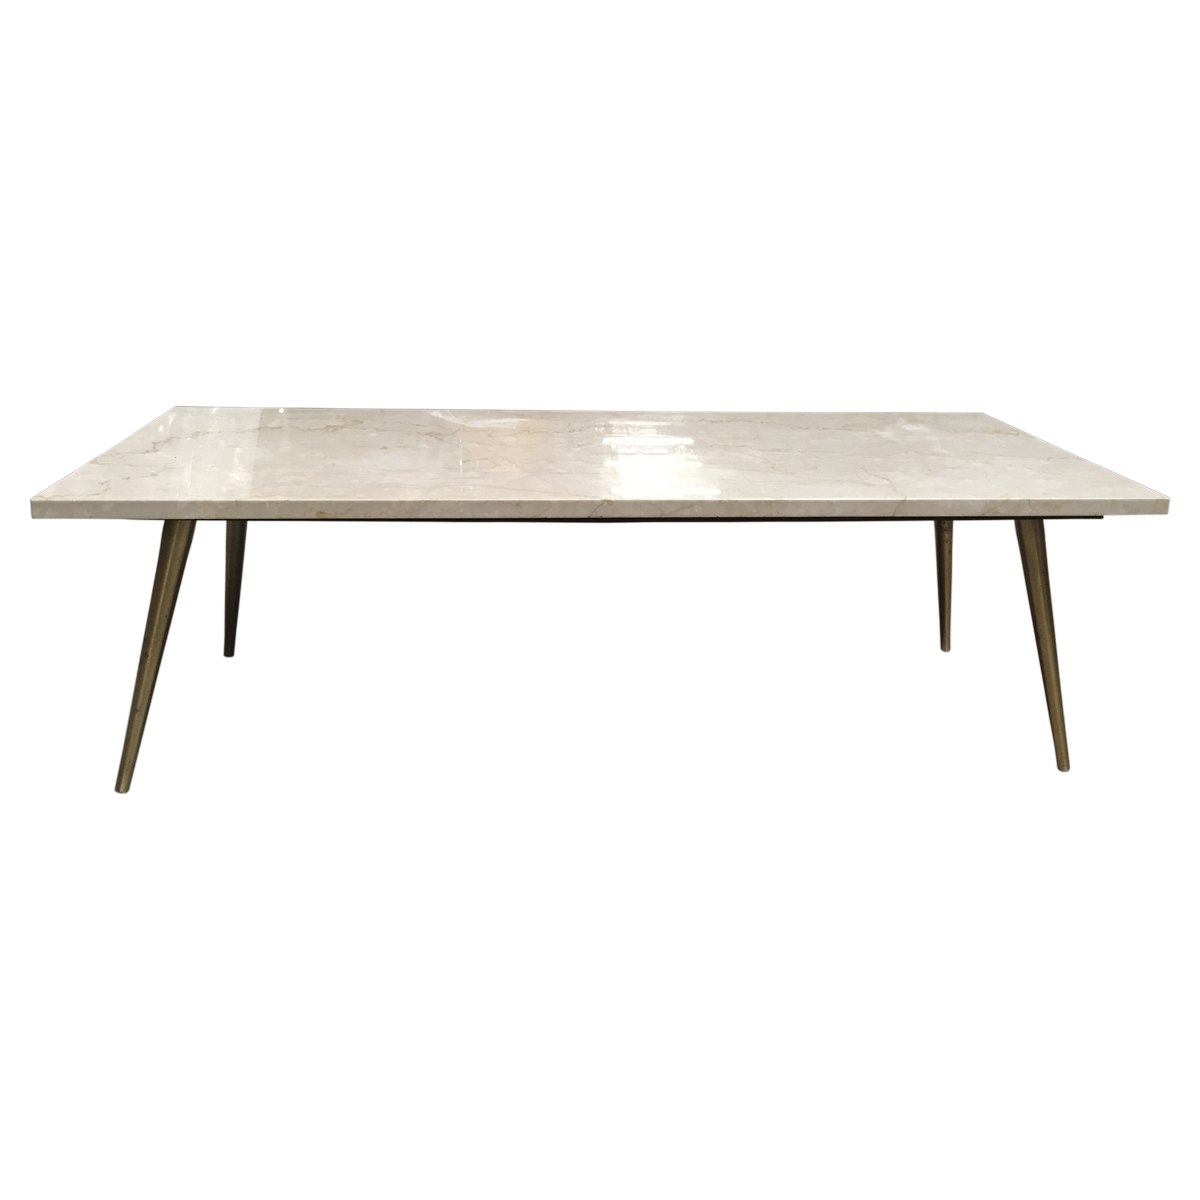 Vintage Mid Century Modern Marble Coffee Table Front View Canape Angle Canape [ 1200 x 1200 Pixel ]